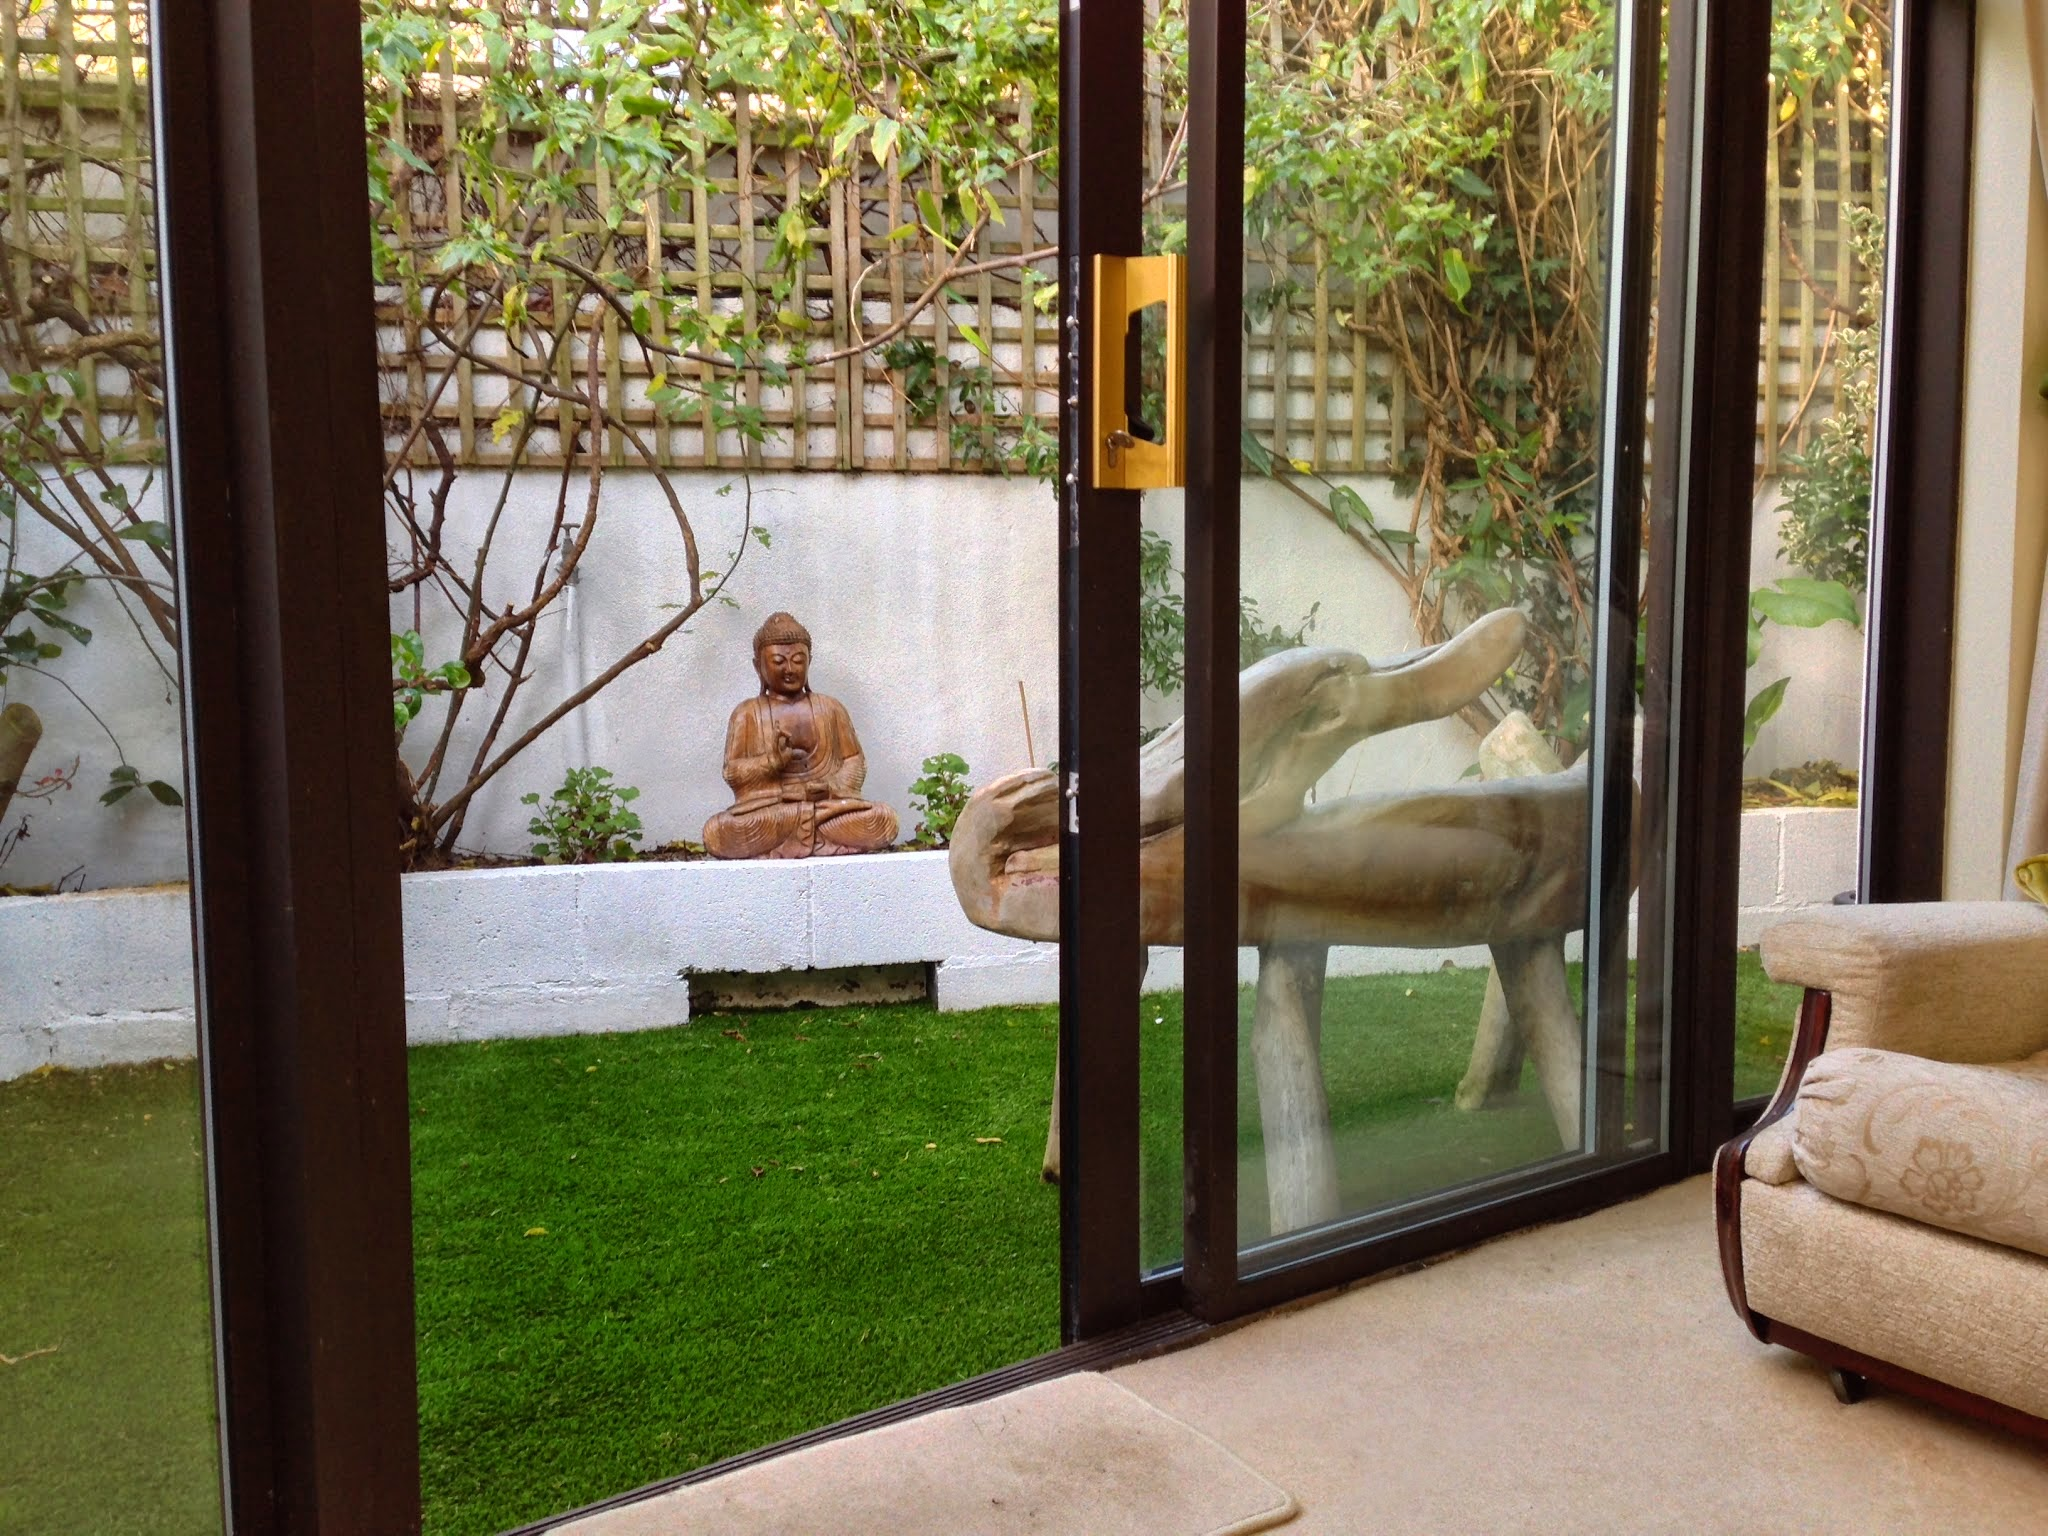 Garden Budda and TigerTurf